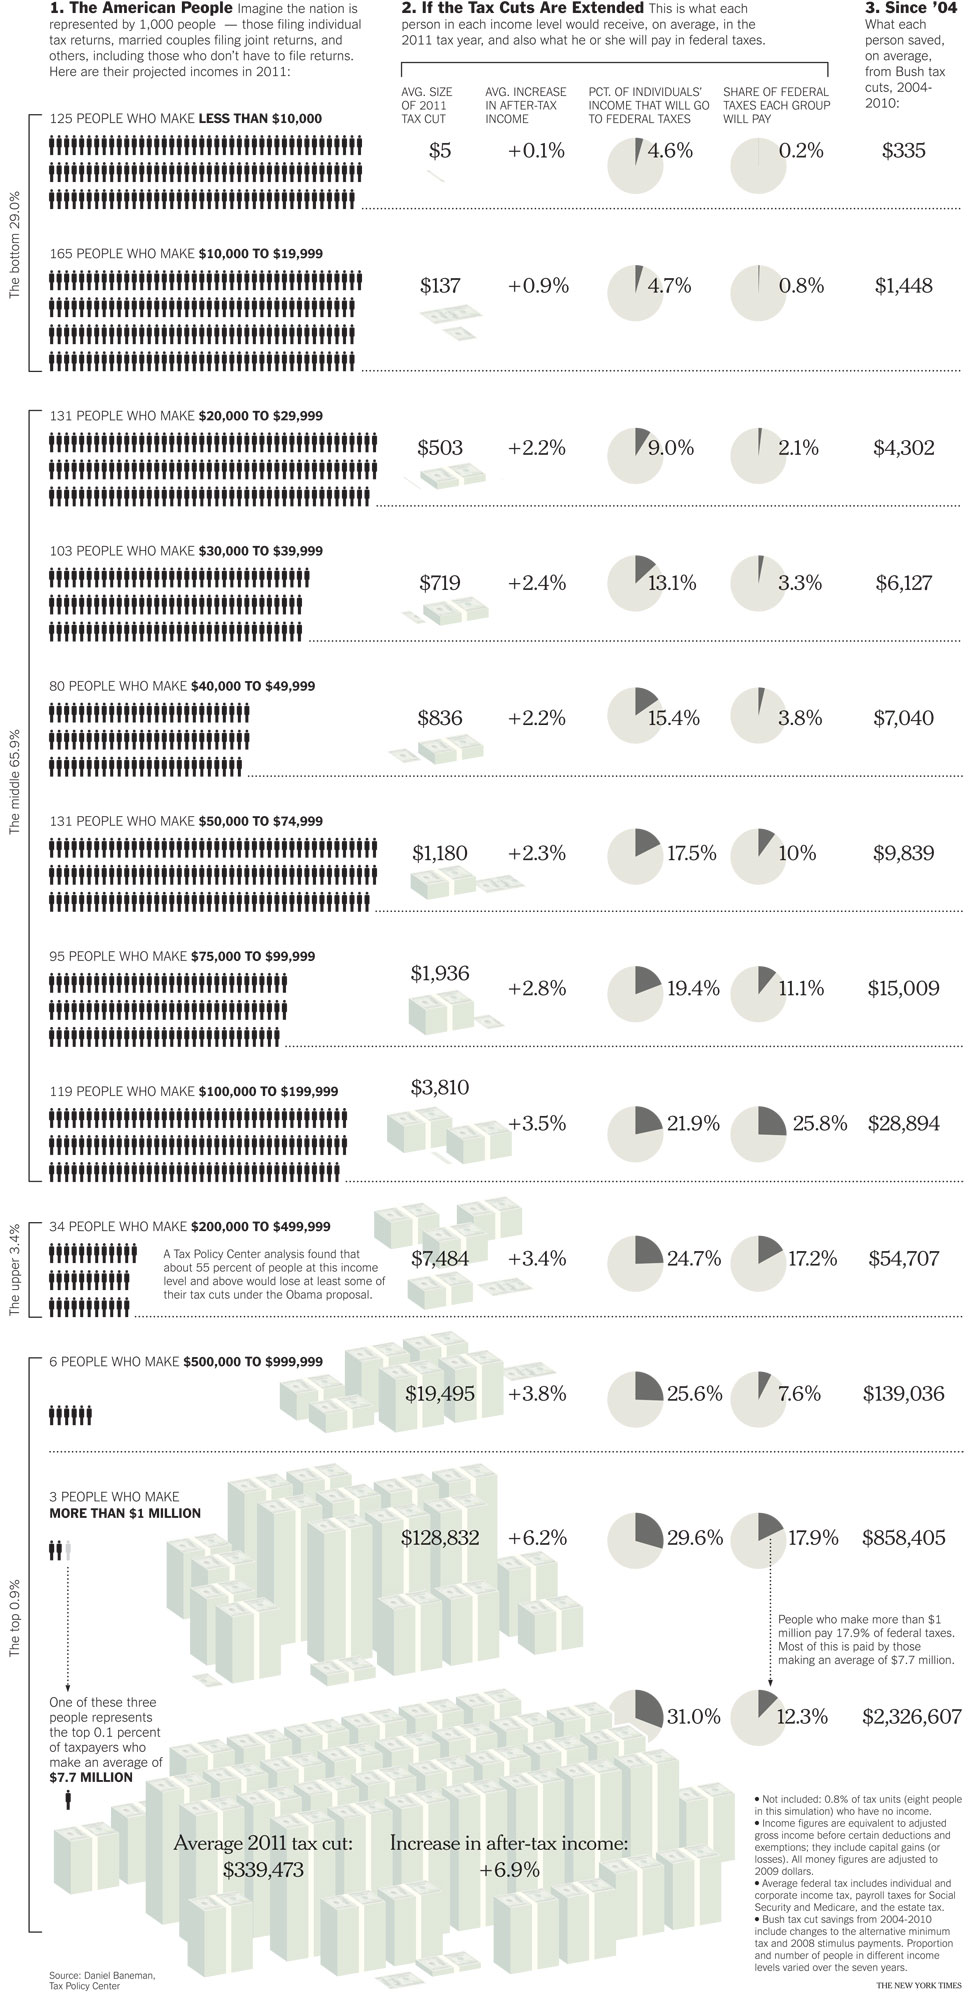 Your Coming Tax Cut (or Not) infographic